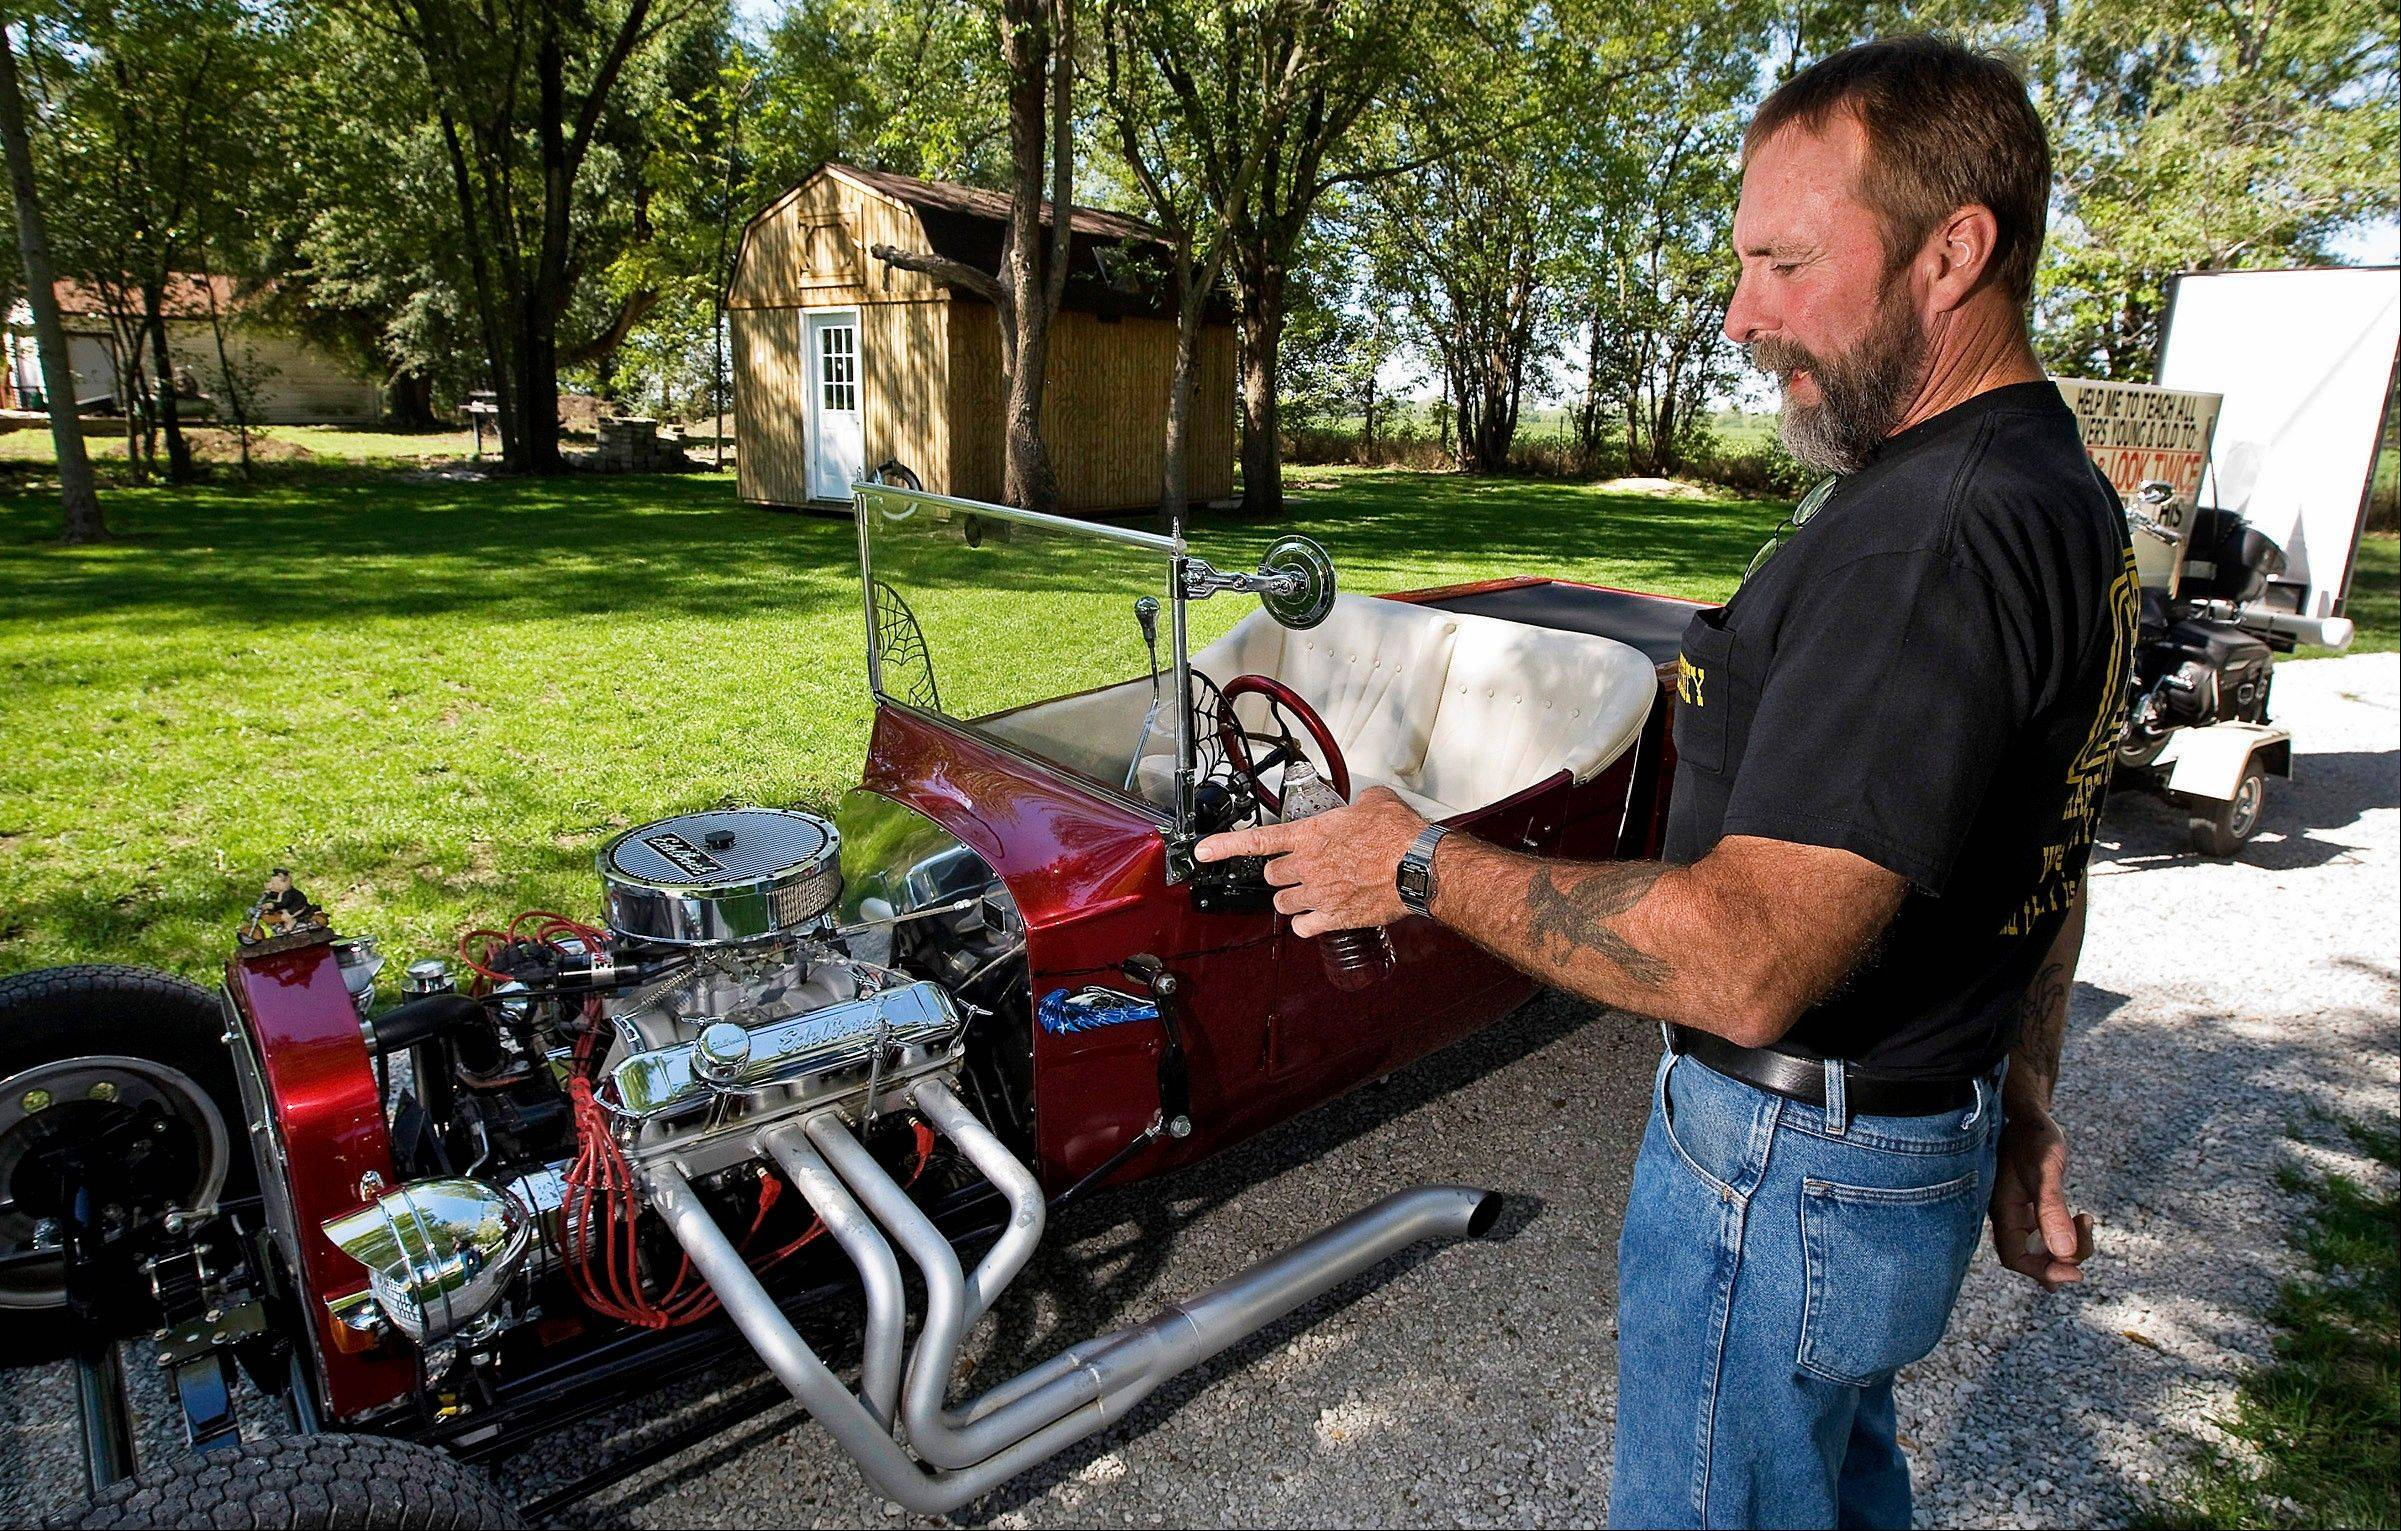 Don Koehler, of Walker, stands next to the 1927 Ford T-bucket he purchased and fixed up after sustaining injuries in a motorcycle accident that would restrict him from driving his Harley-Davidson.